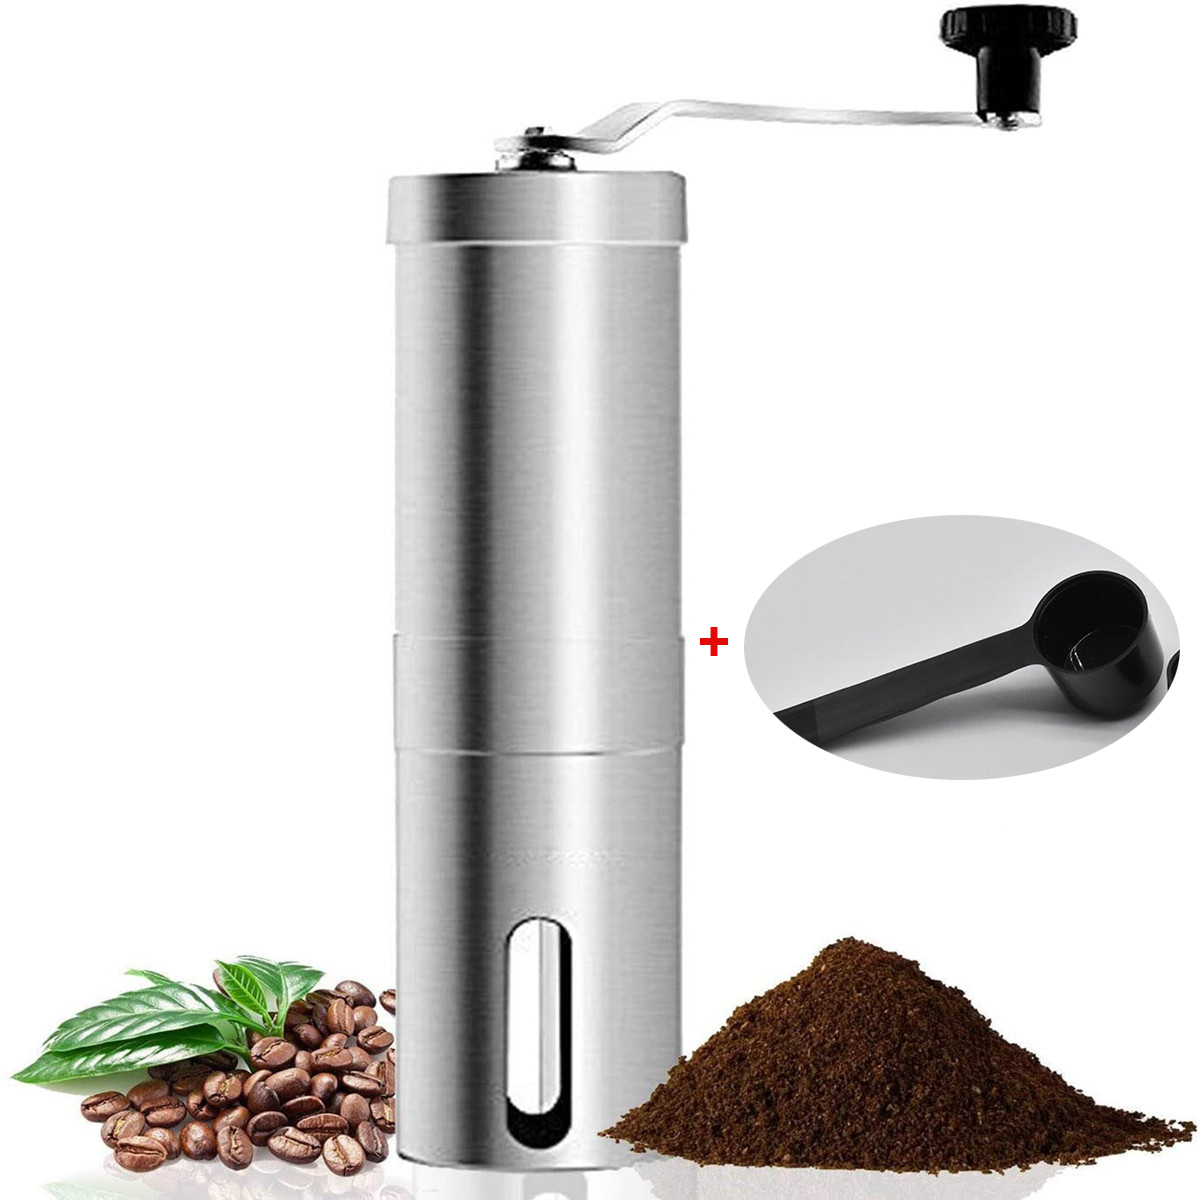 Portable Stainless Steel Manual Coffee Bean Grinder Handmade Grinder Manual Grinding Machine Coffee Mill Kitchen Tool Dropshipin